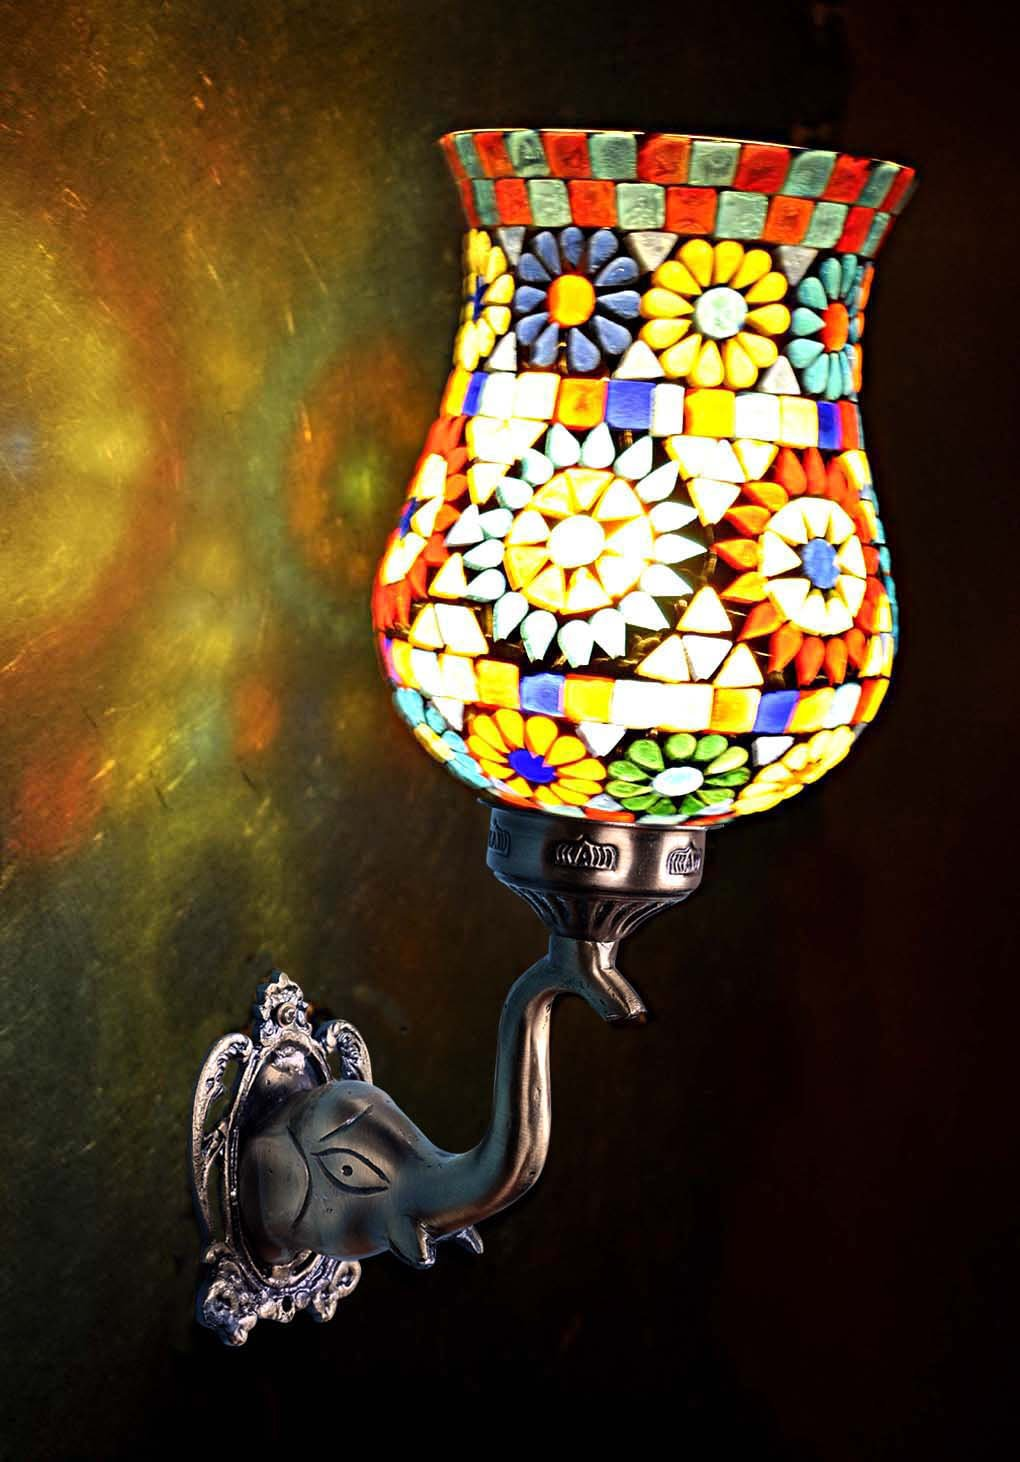 Lalhaveli Vintage Decorative Turkish Mosaic Glass Wall Light Sconce Fixture/Indoor & Outdoor Home Decor Wall Lamp for Living Room, Bed Room and Balcony, Bronze Finish